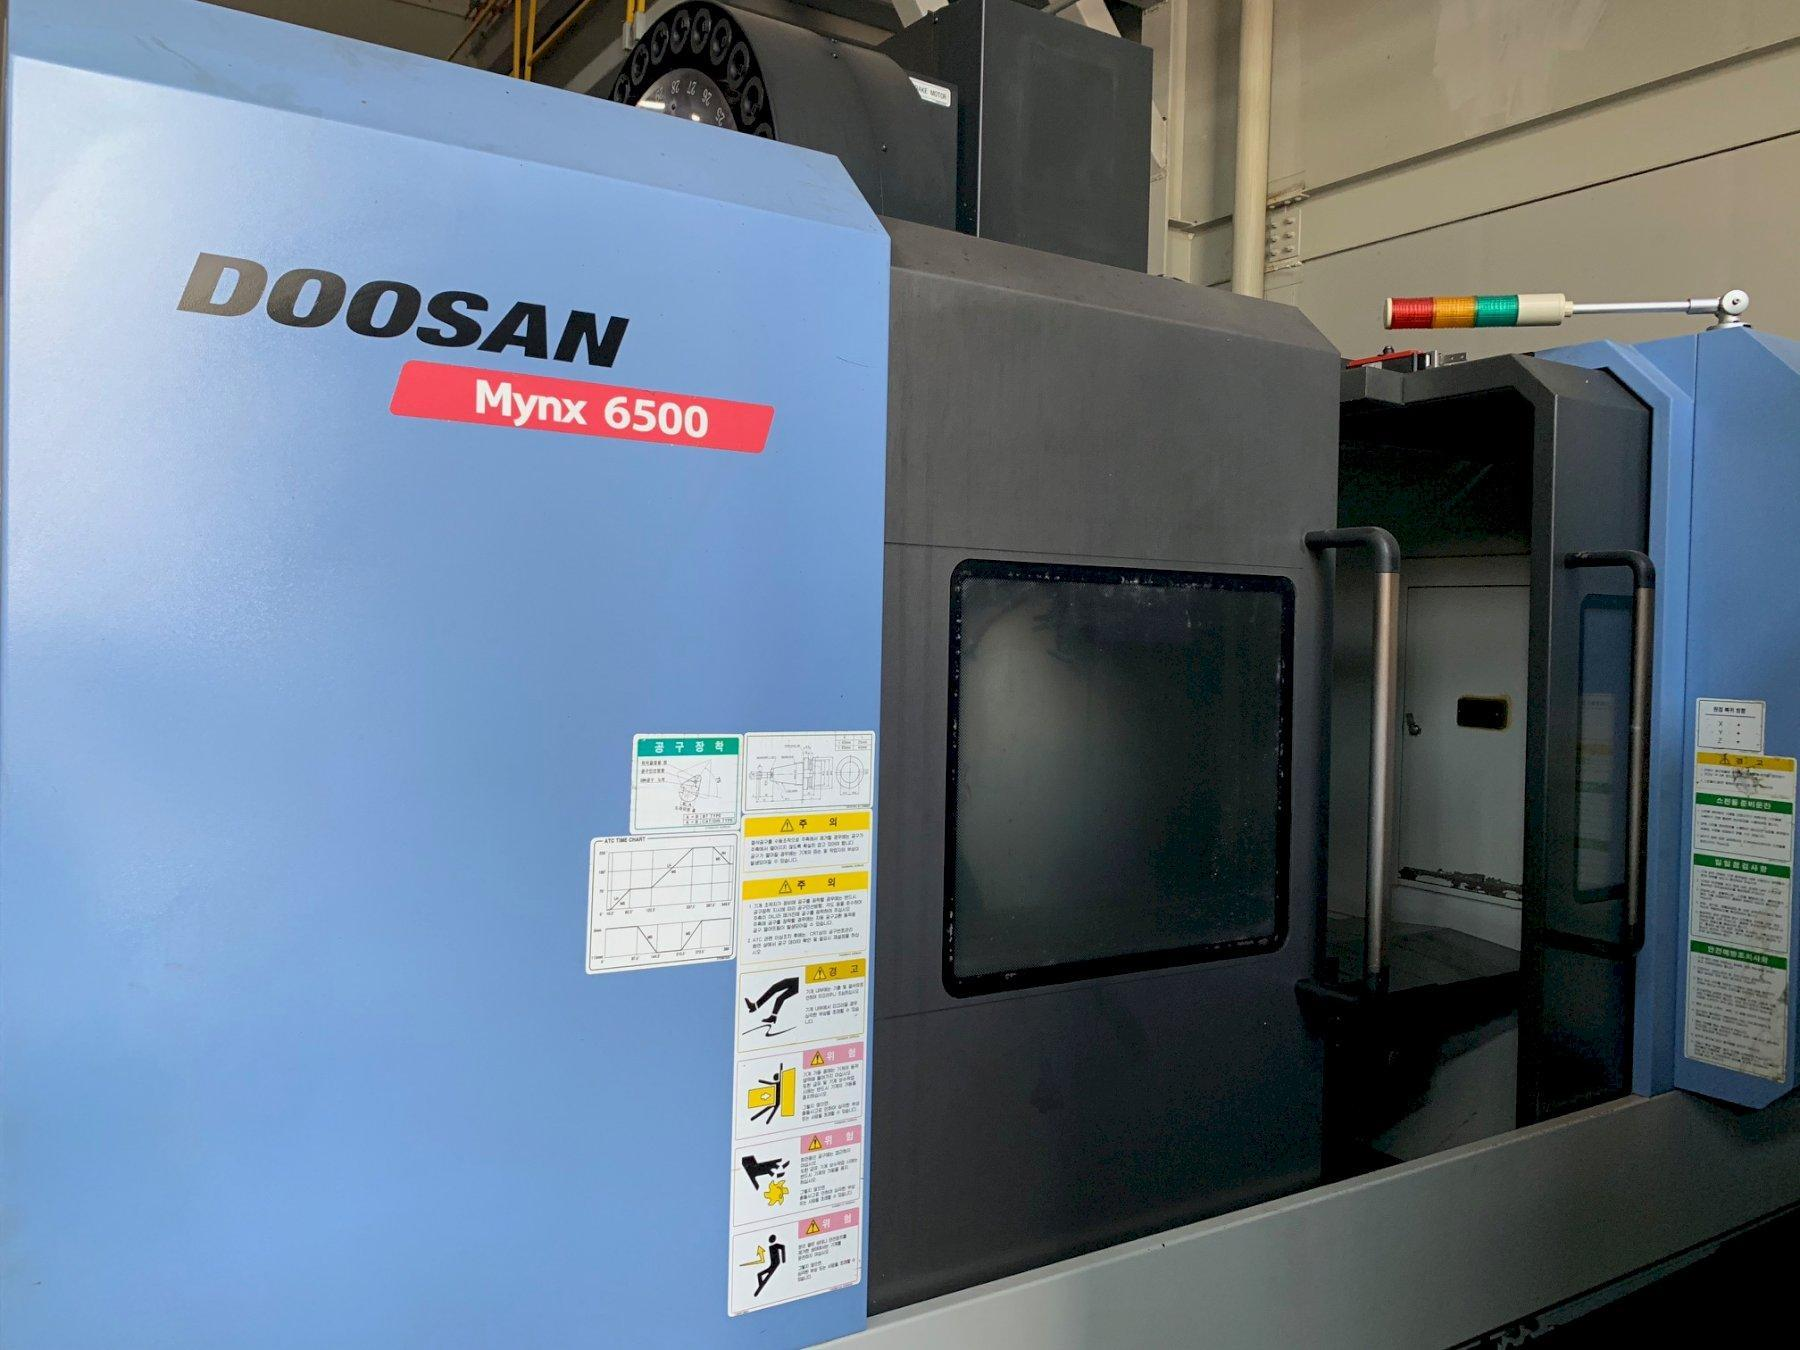 2011 Doosan Mynx 6500 - Vertical Machining Center